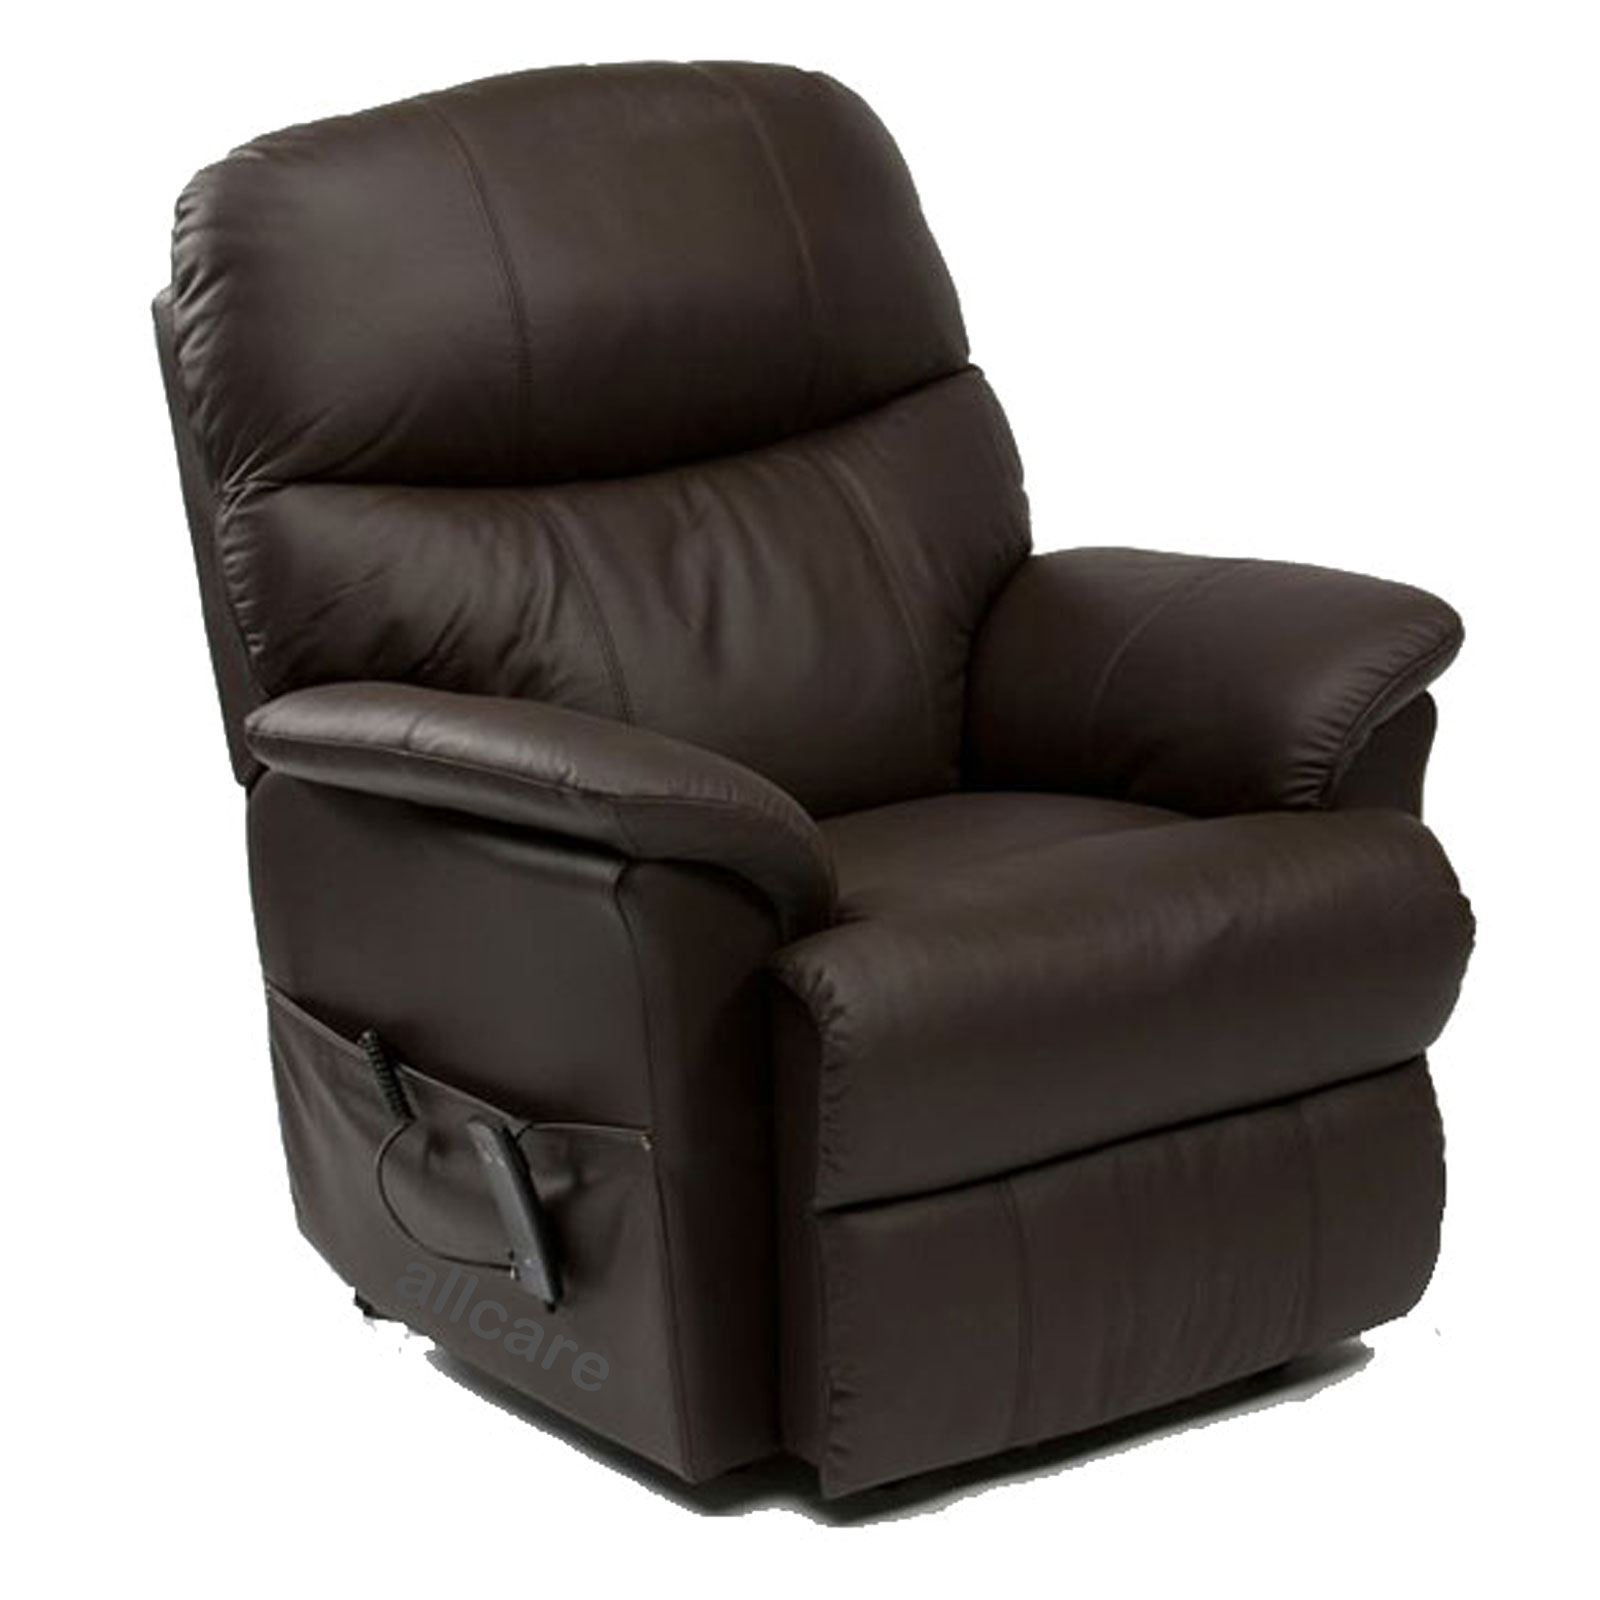 Restwell-Lars-Leather-Electric-Riser-Recliner-Chair-Dual-  sc 1 st  eBay & Restwell Lars Leather Electric Riser Recliner Chair Dual Motor ... islam-shia.org